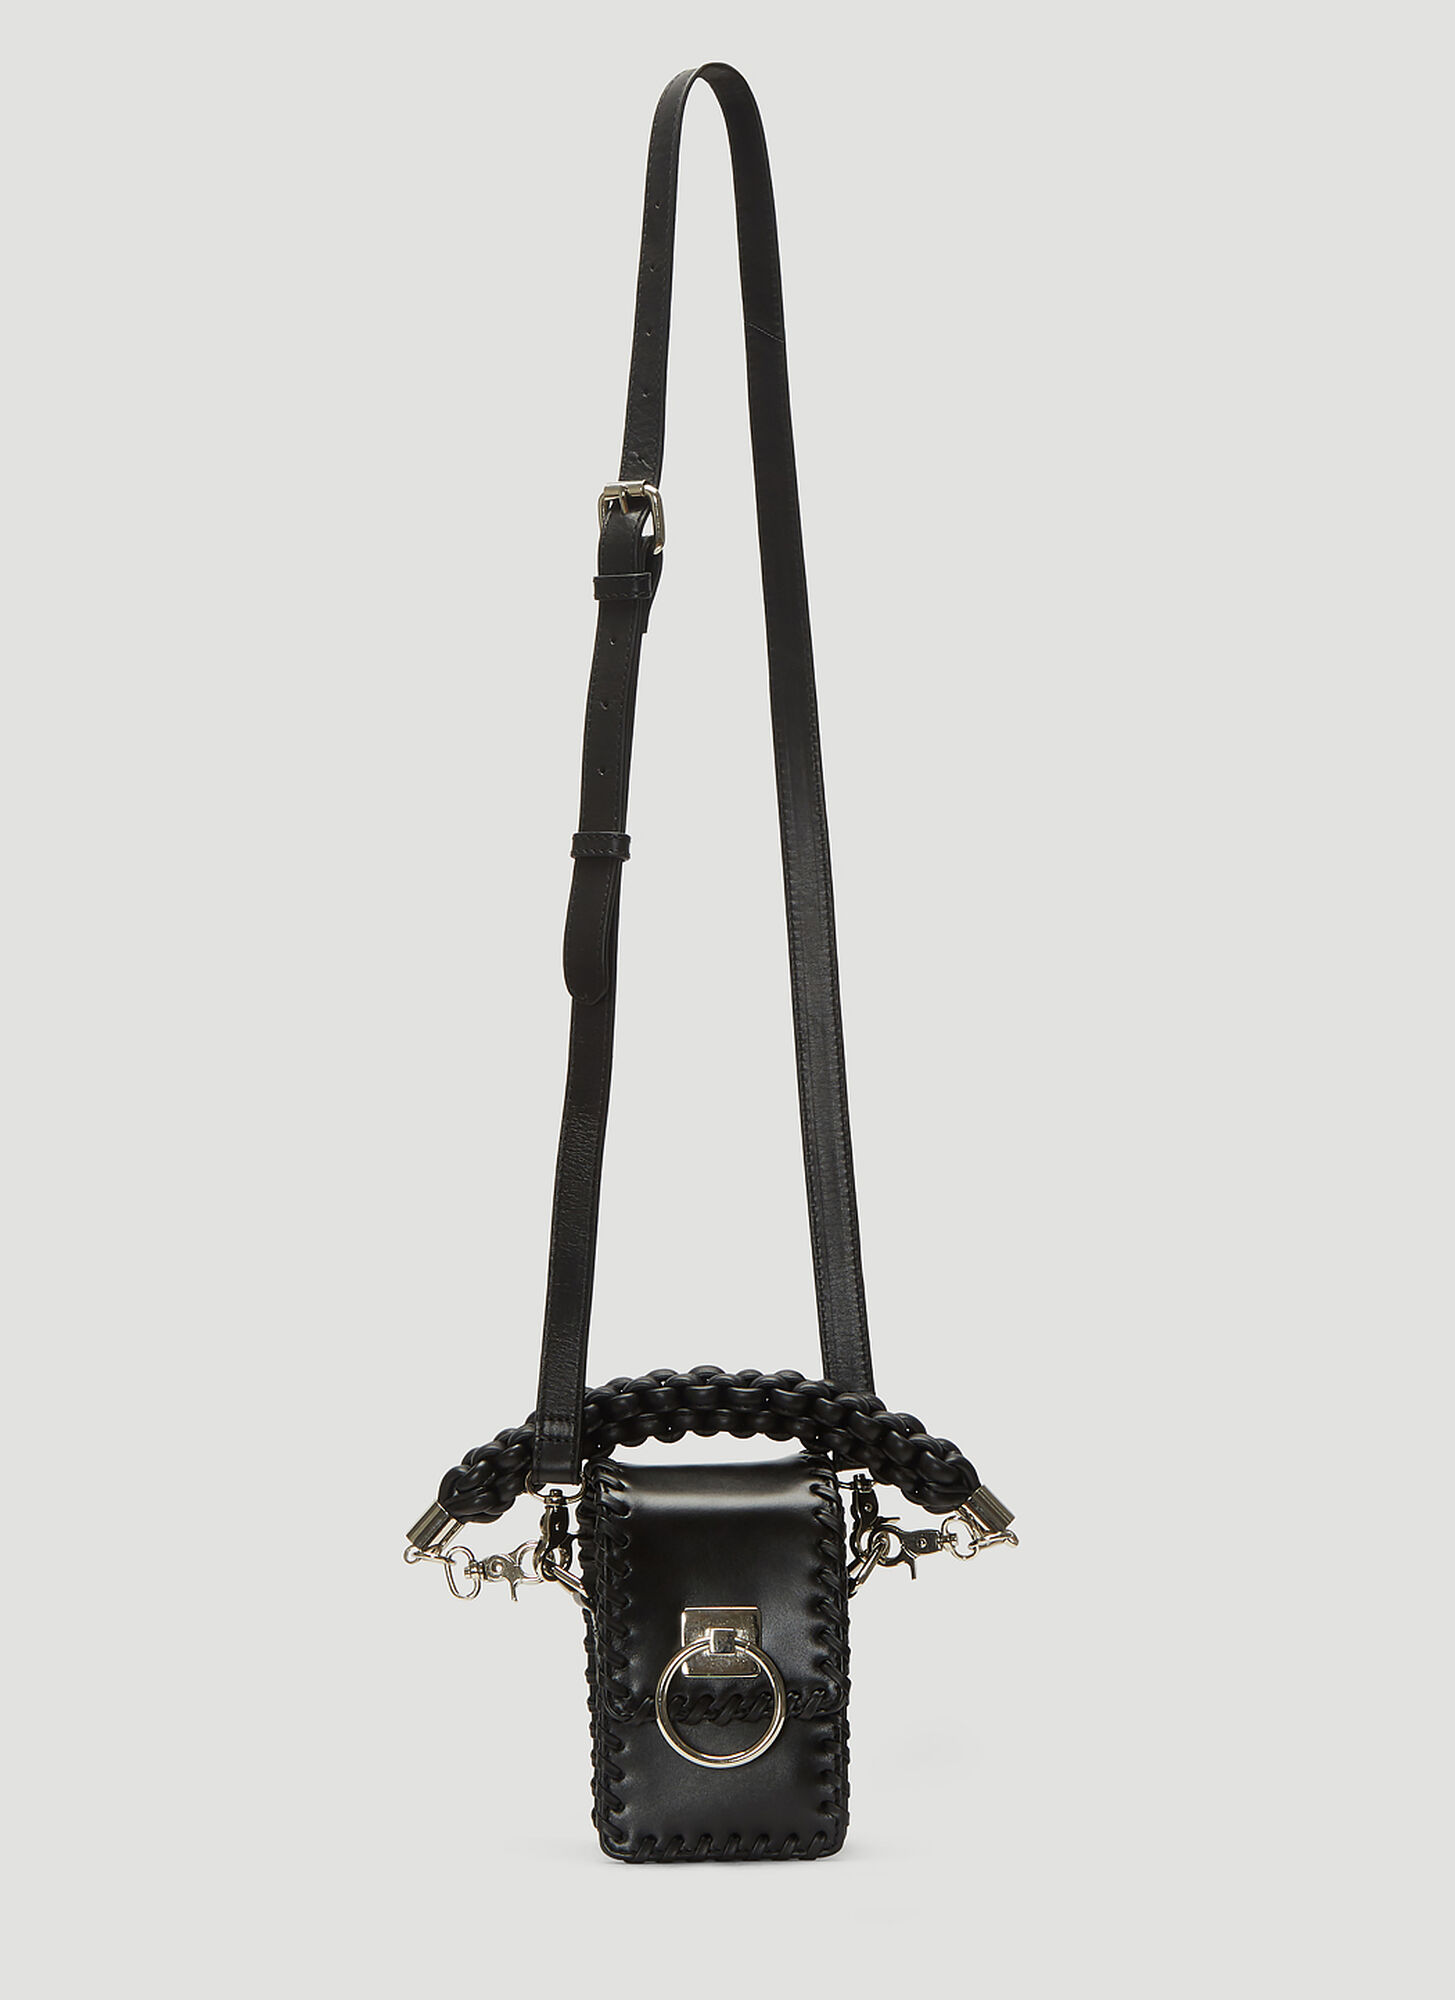 Oberkampf Mini Shoulder Bag in Black